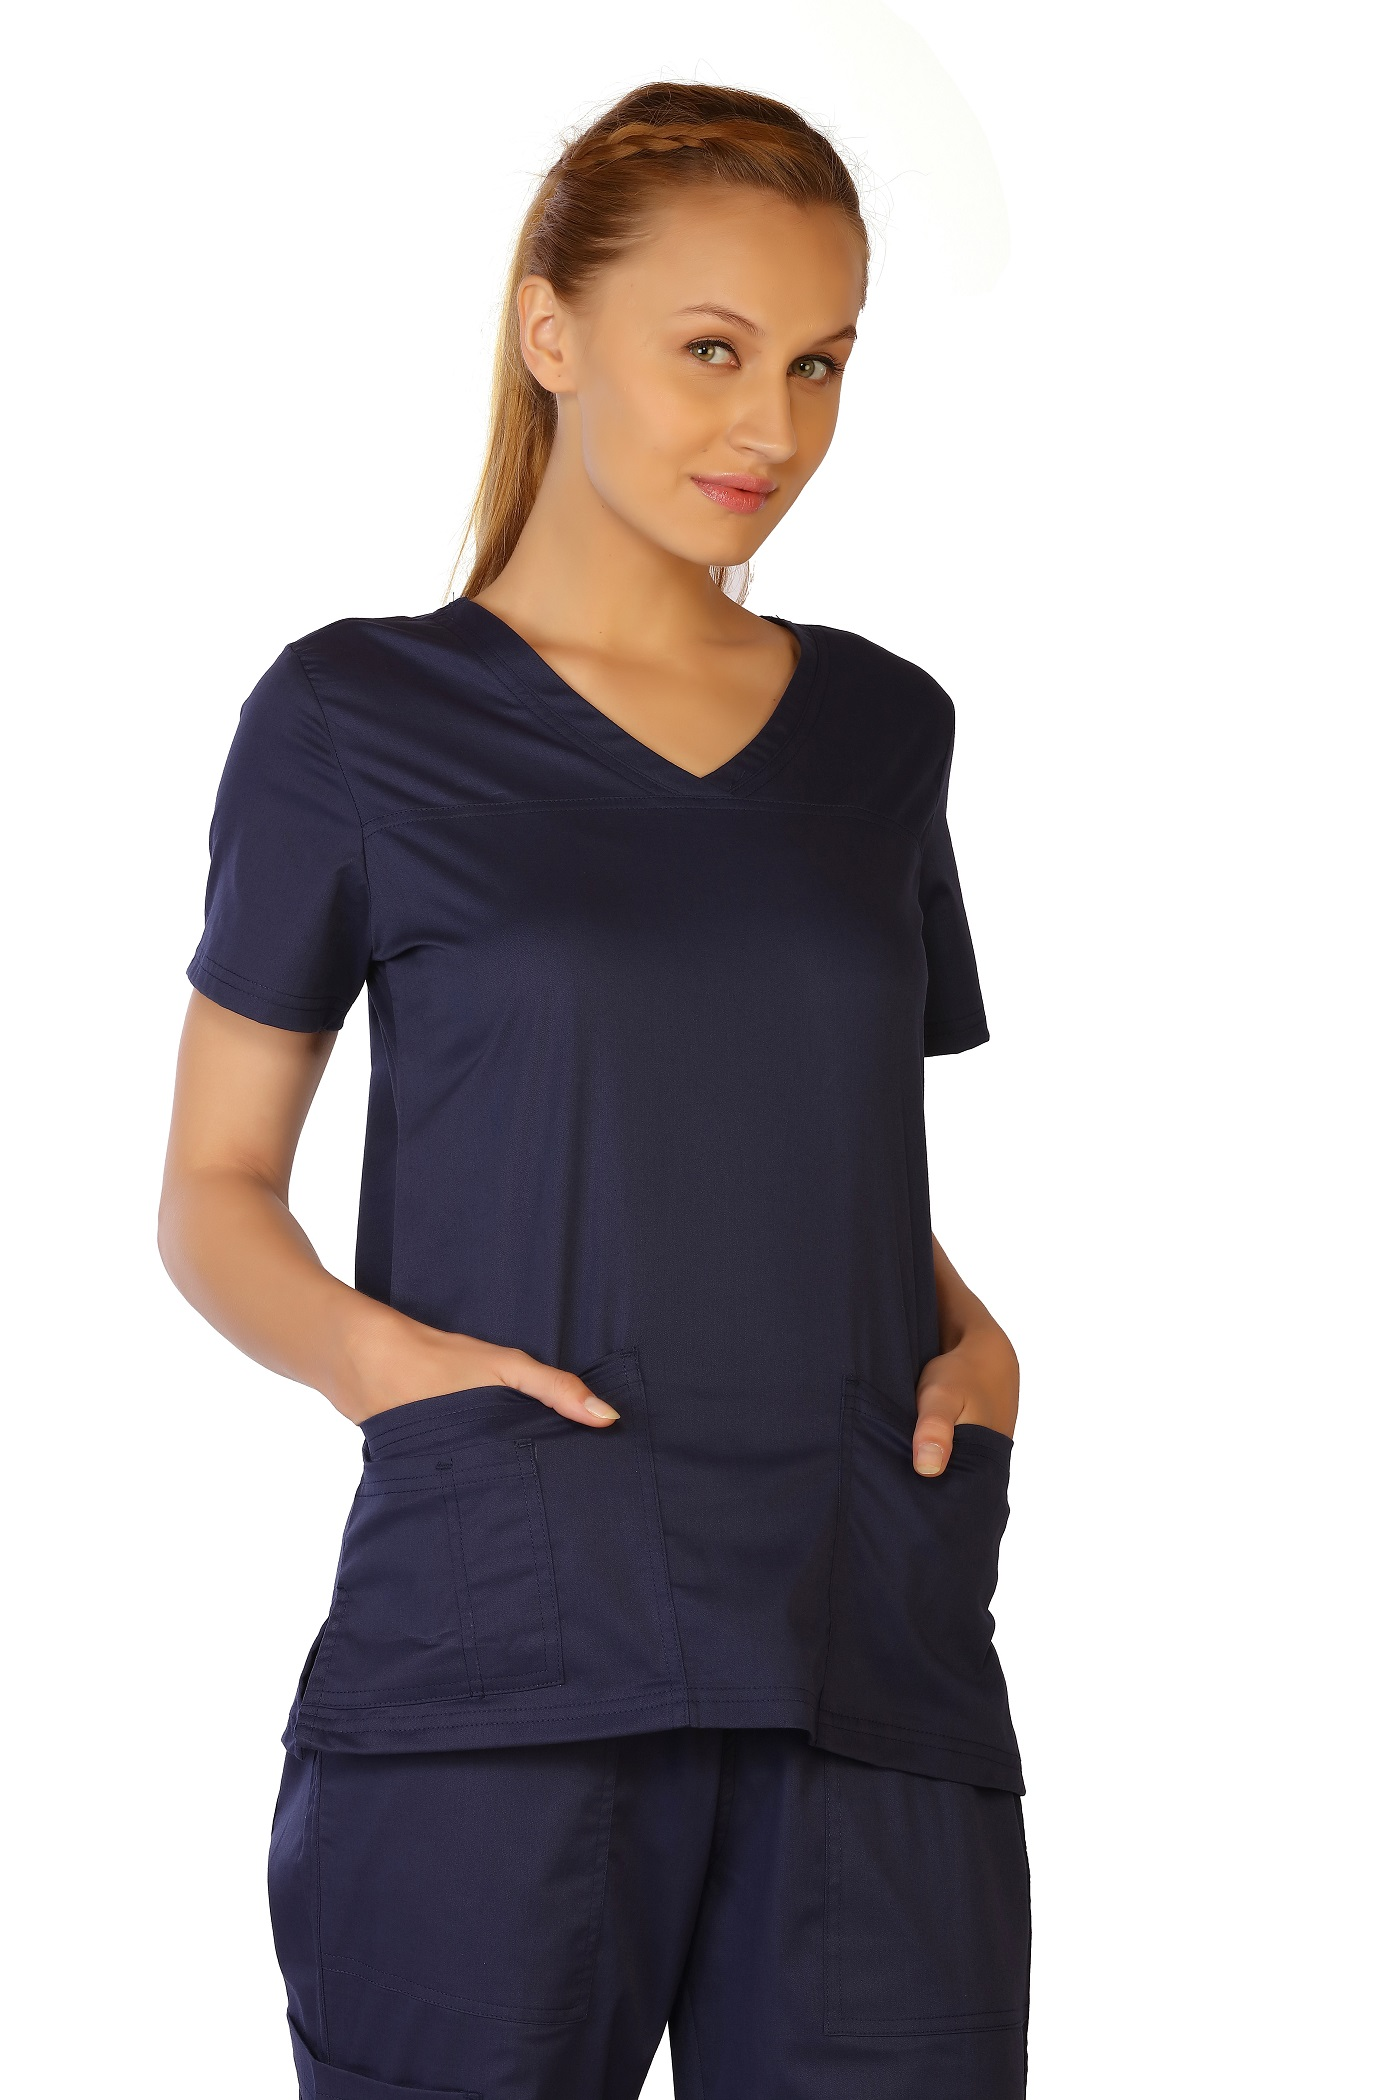 Women's Stretch V-Neck Top, LifeThreads Contego Collection